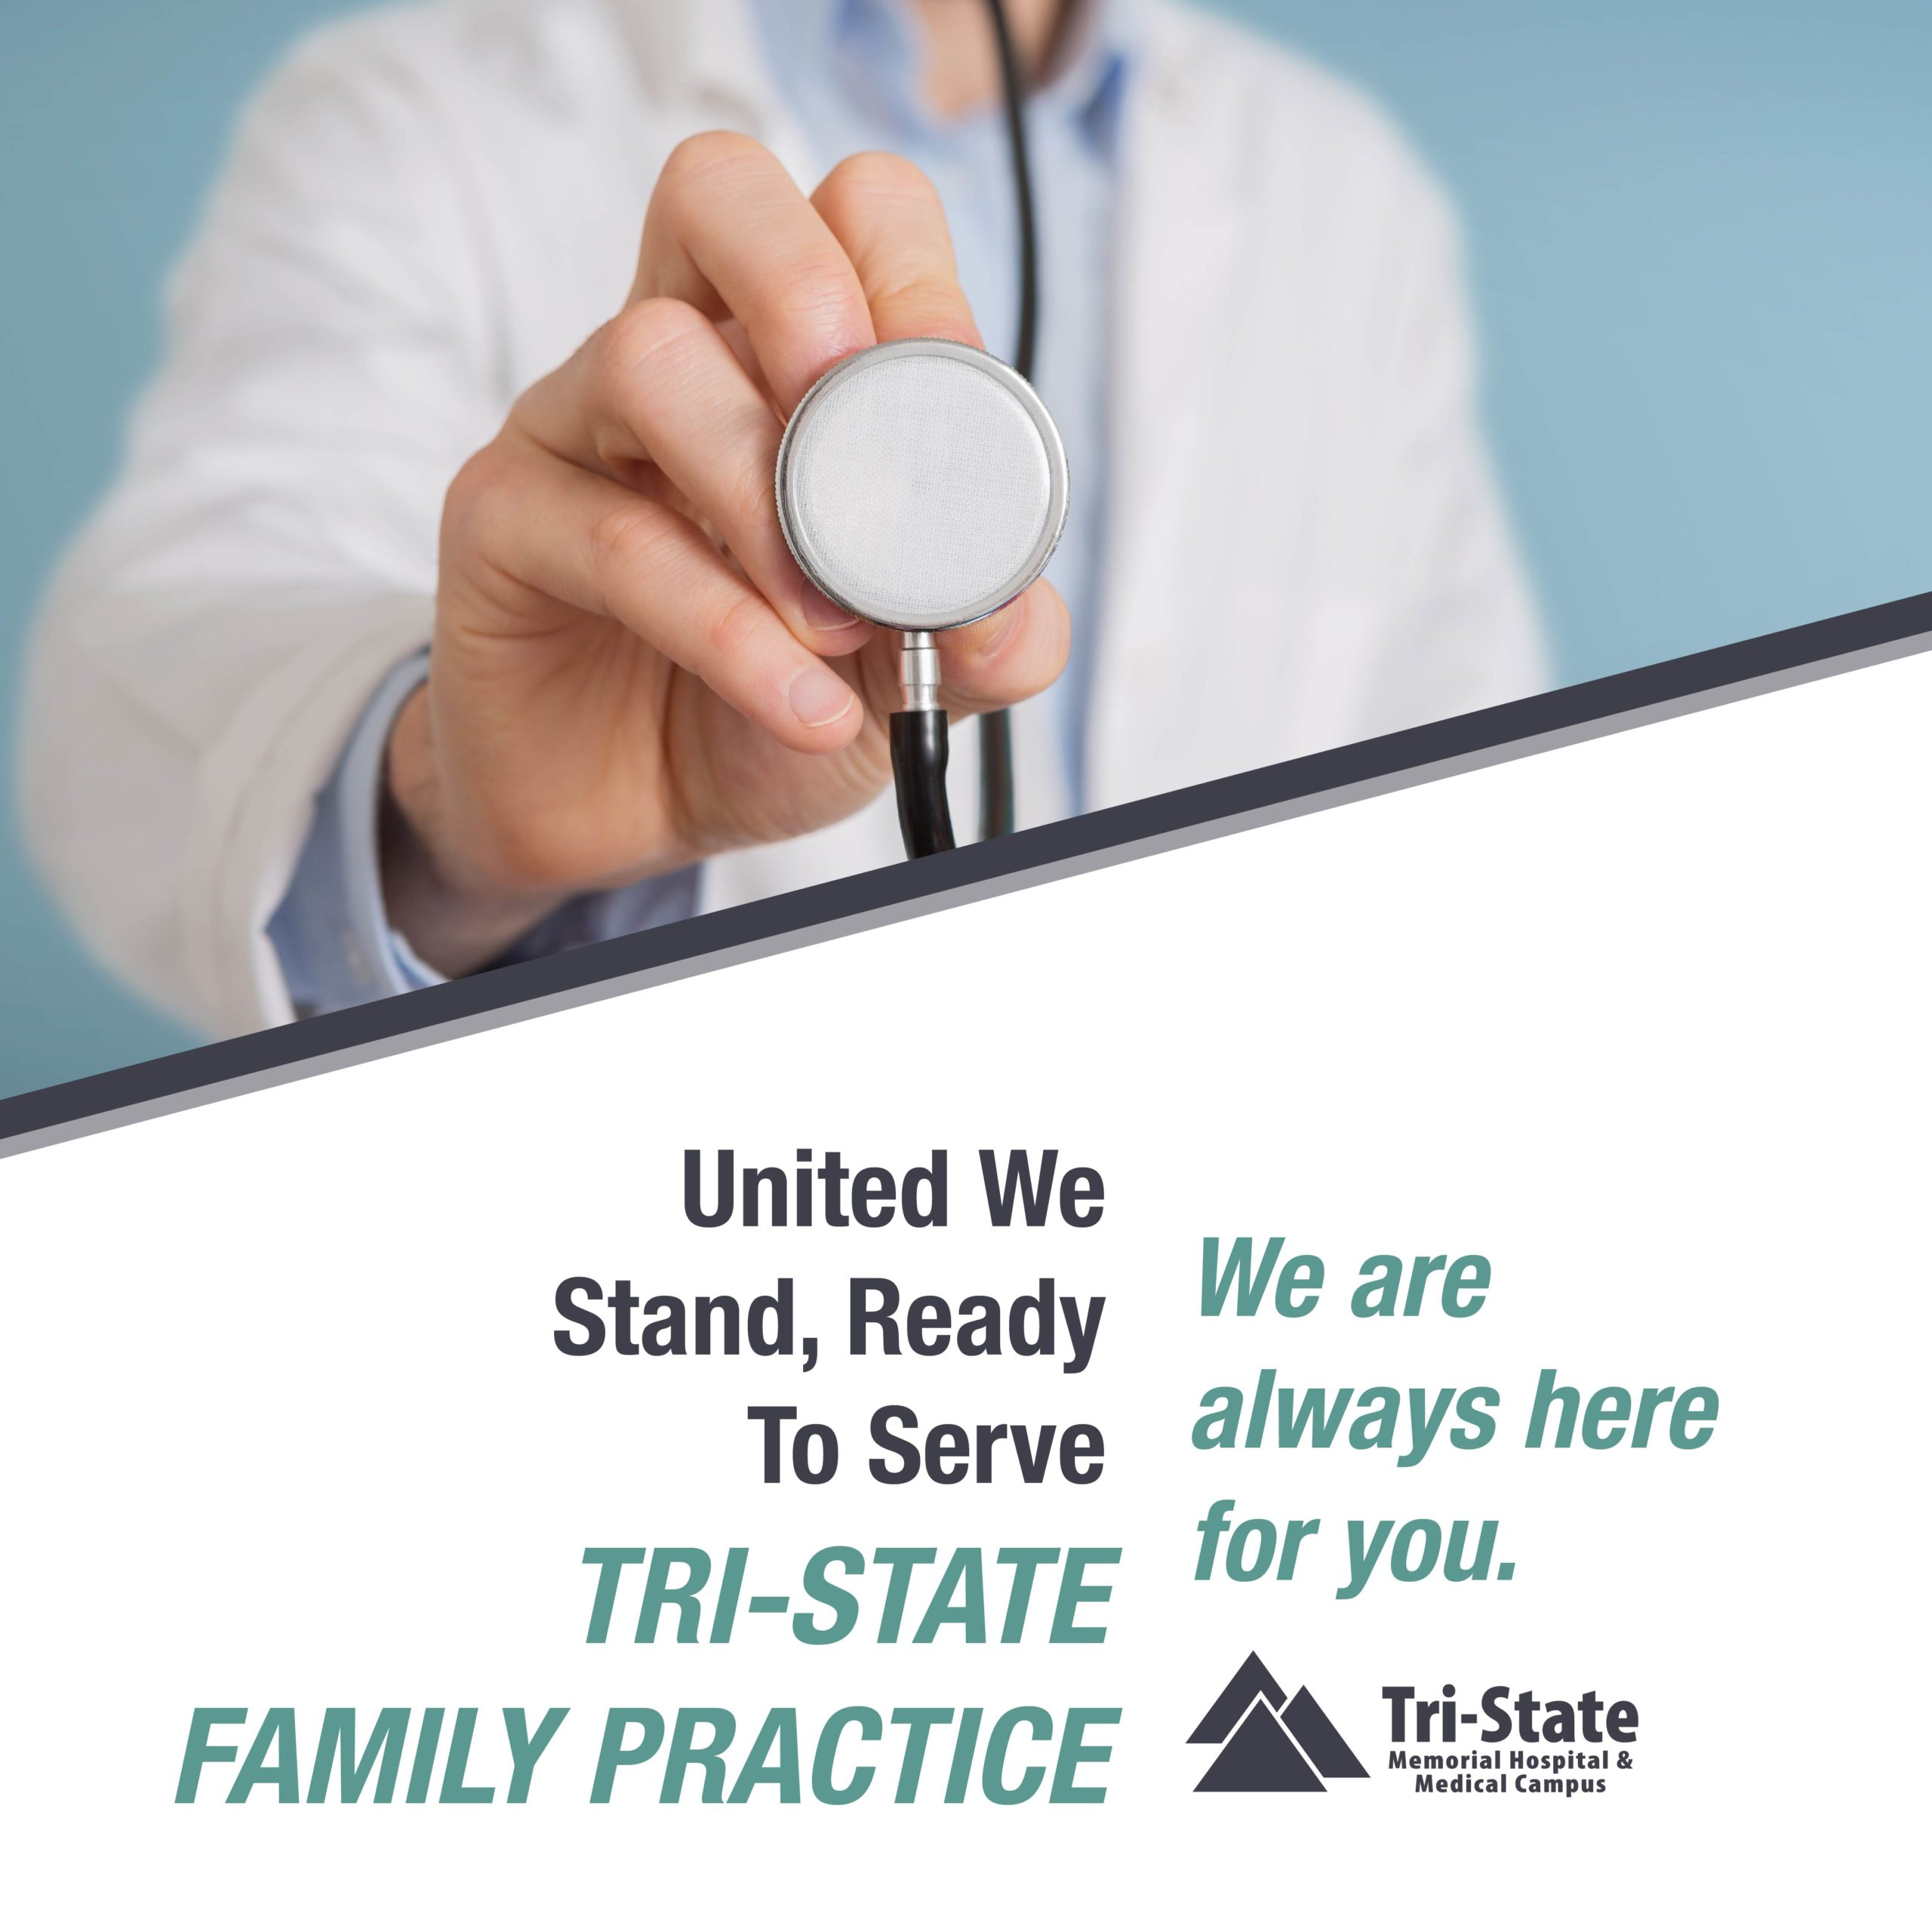 Tri-State Family Practice: Ready to Serve